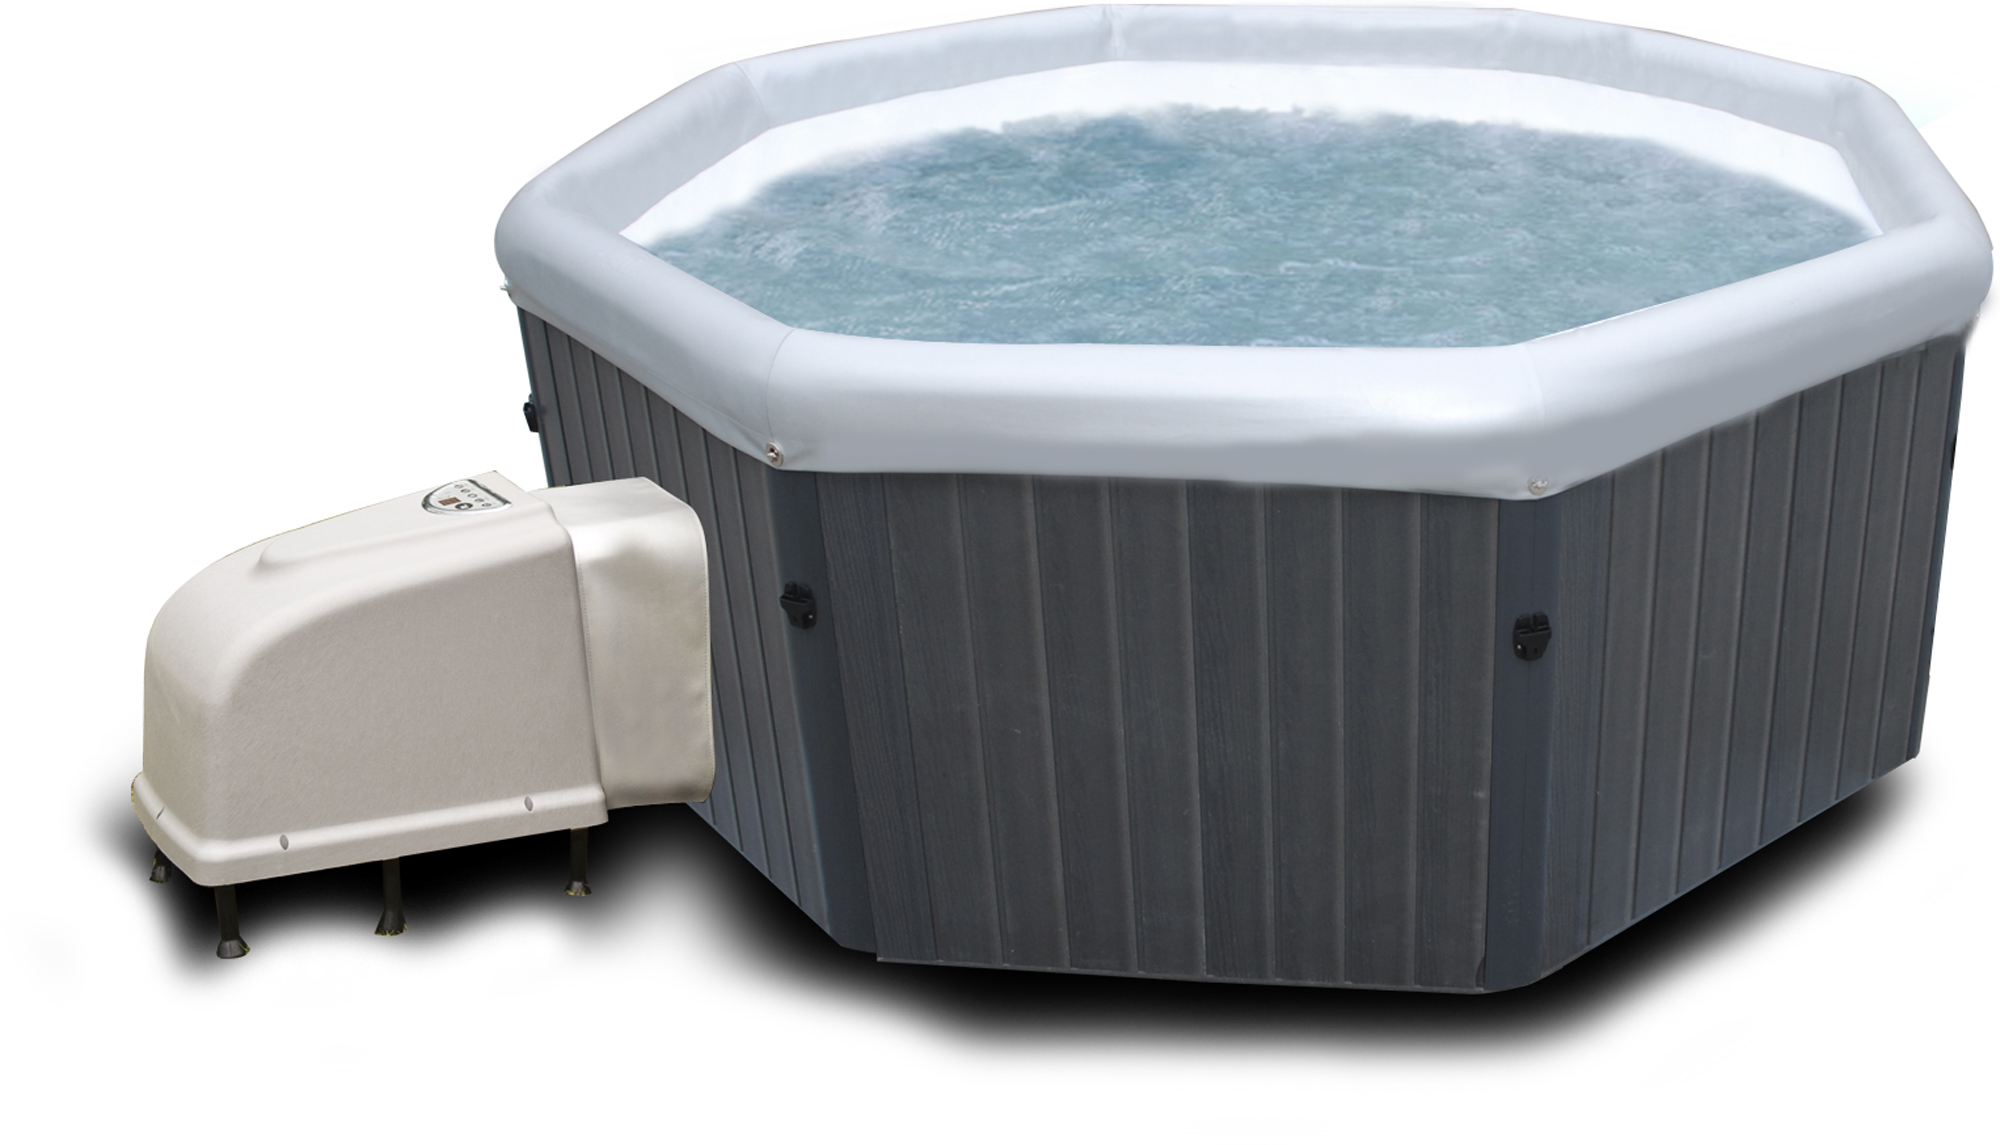 Poolstar spa portable tuscany jet 6 places for Piscine portable